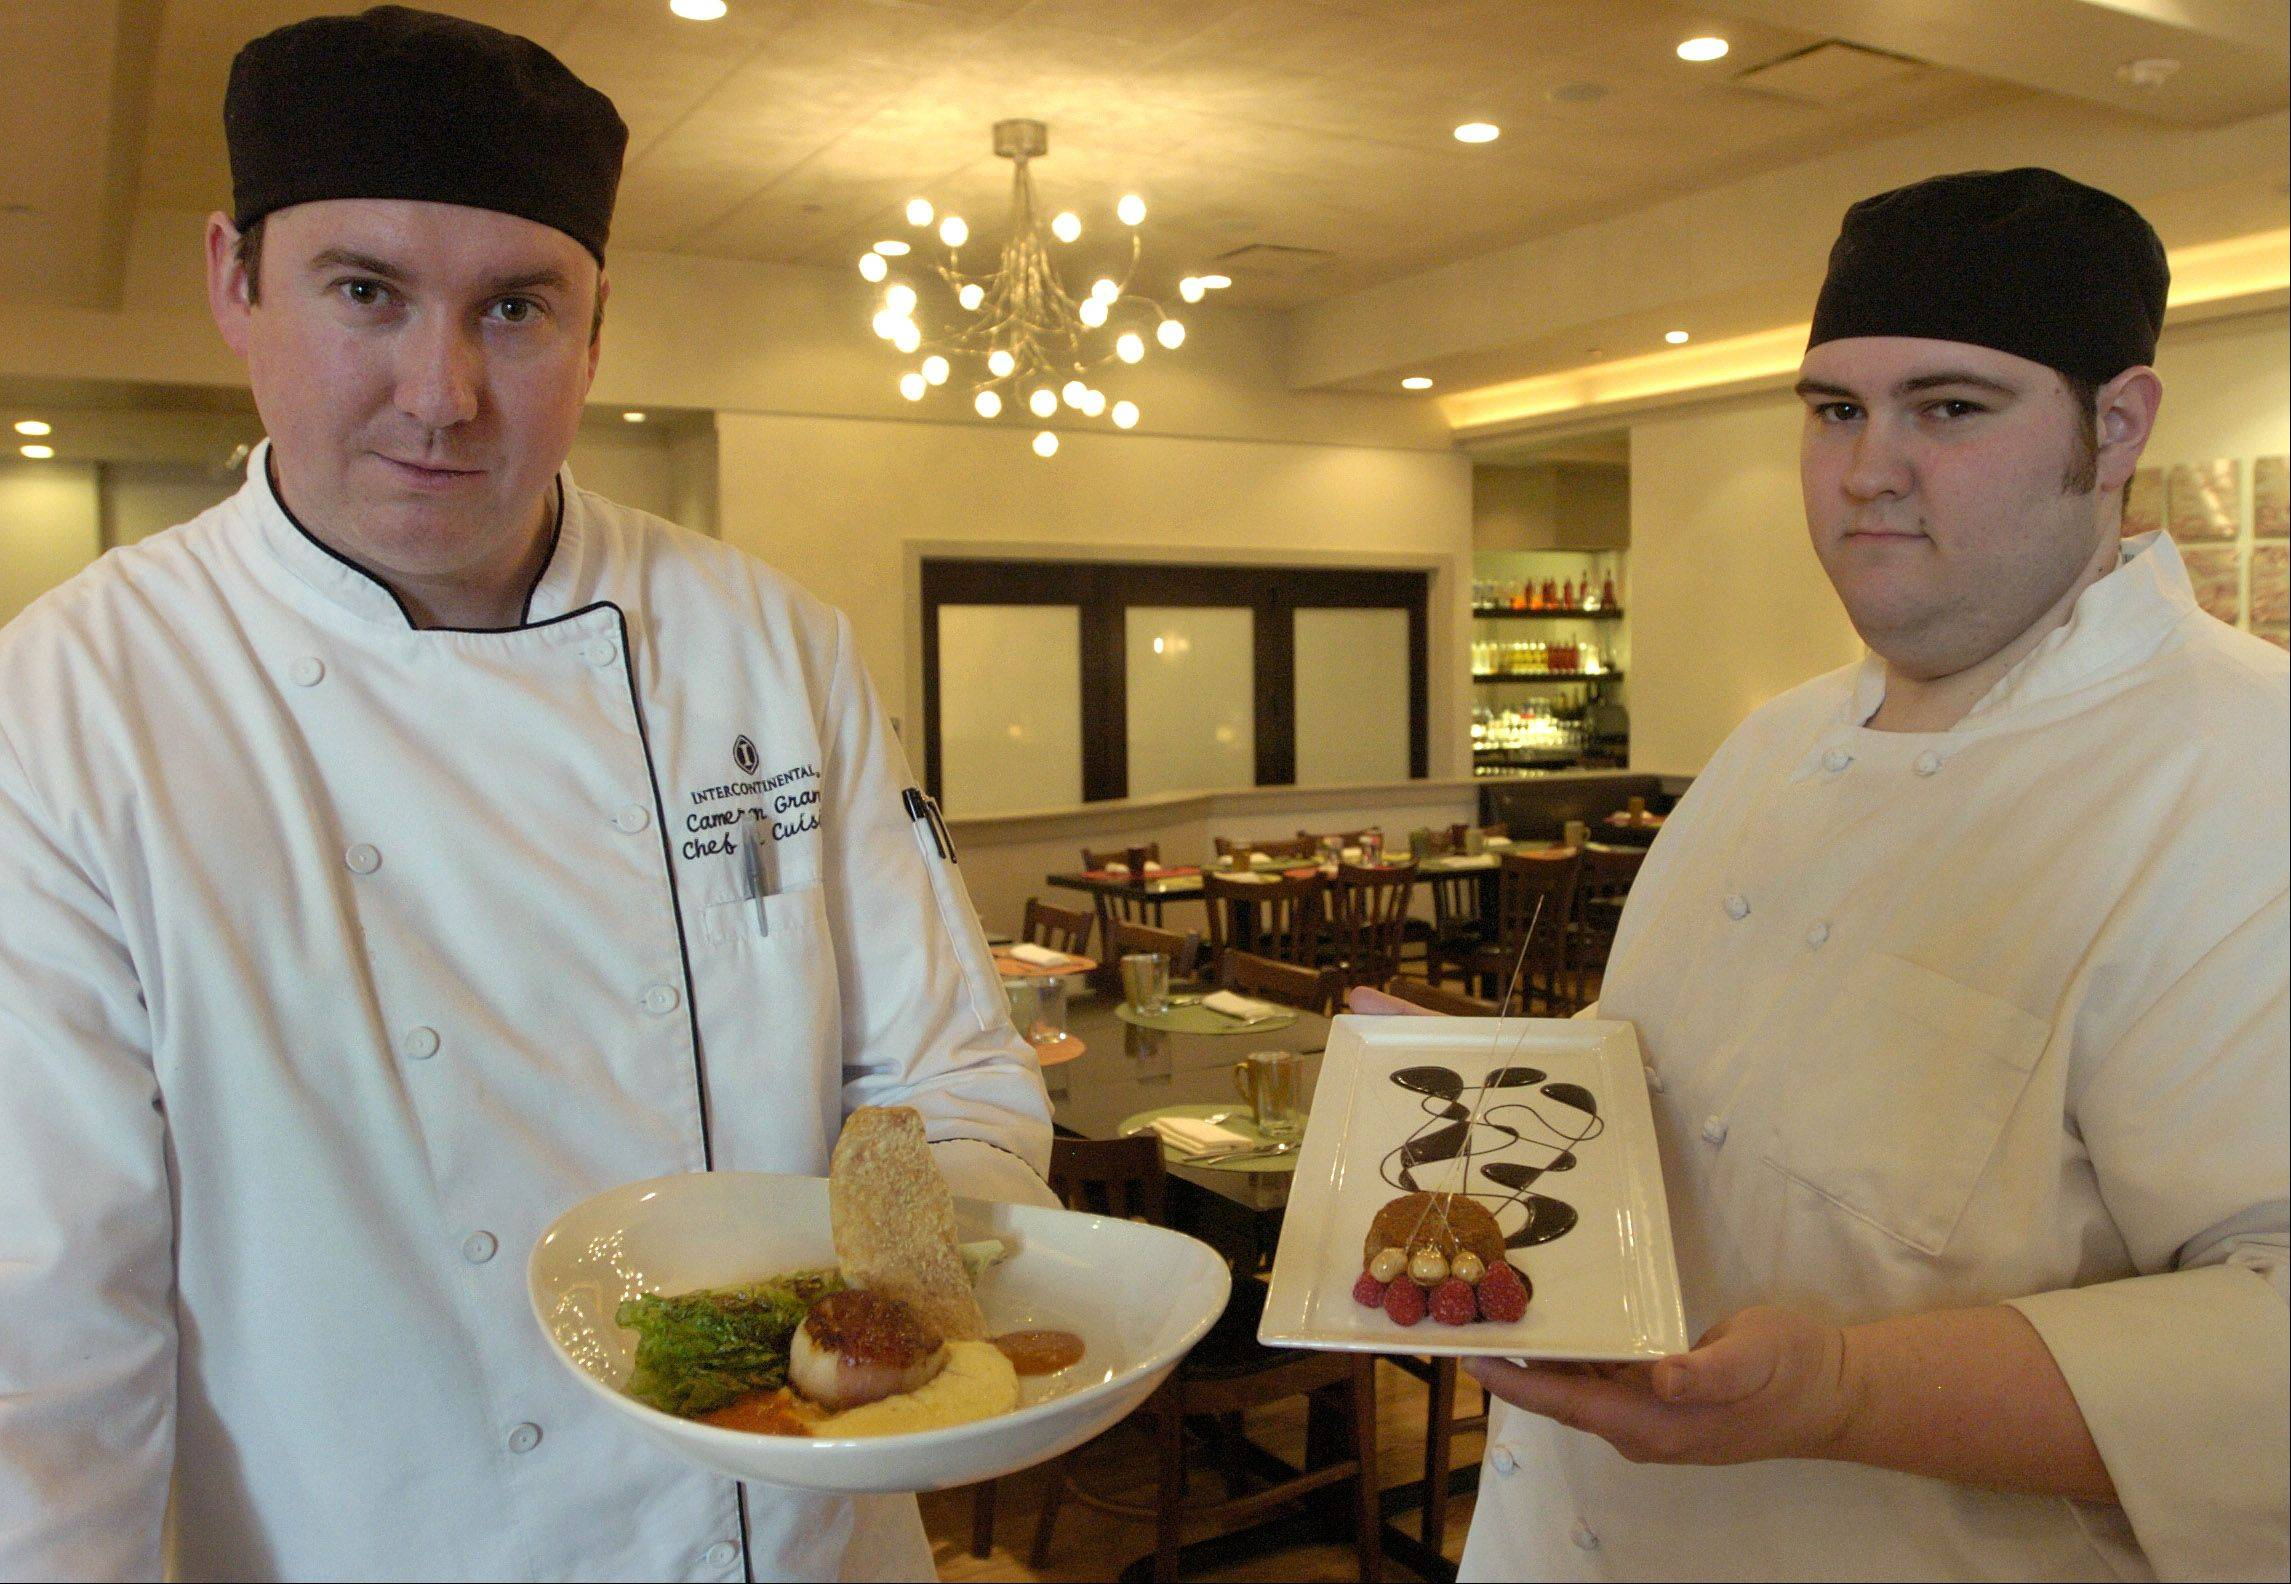 Chef de cuisine Cameron Grant, left, and pastry chef Mark Becker, of Fresco 21 in Rosemont, will whip up specialty dishes for diners during Chicago Restaurant Week.